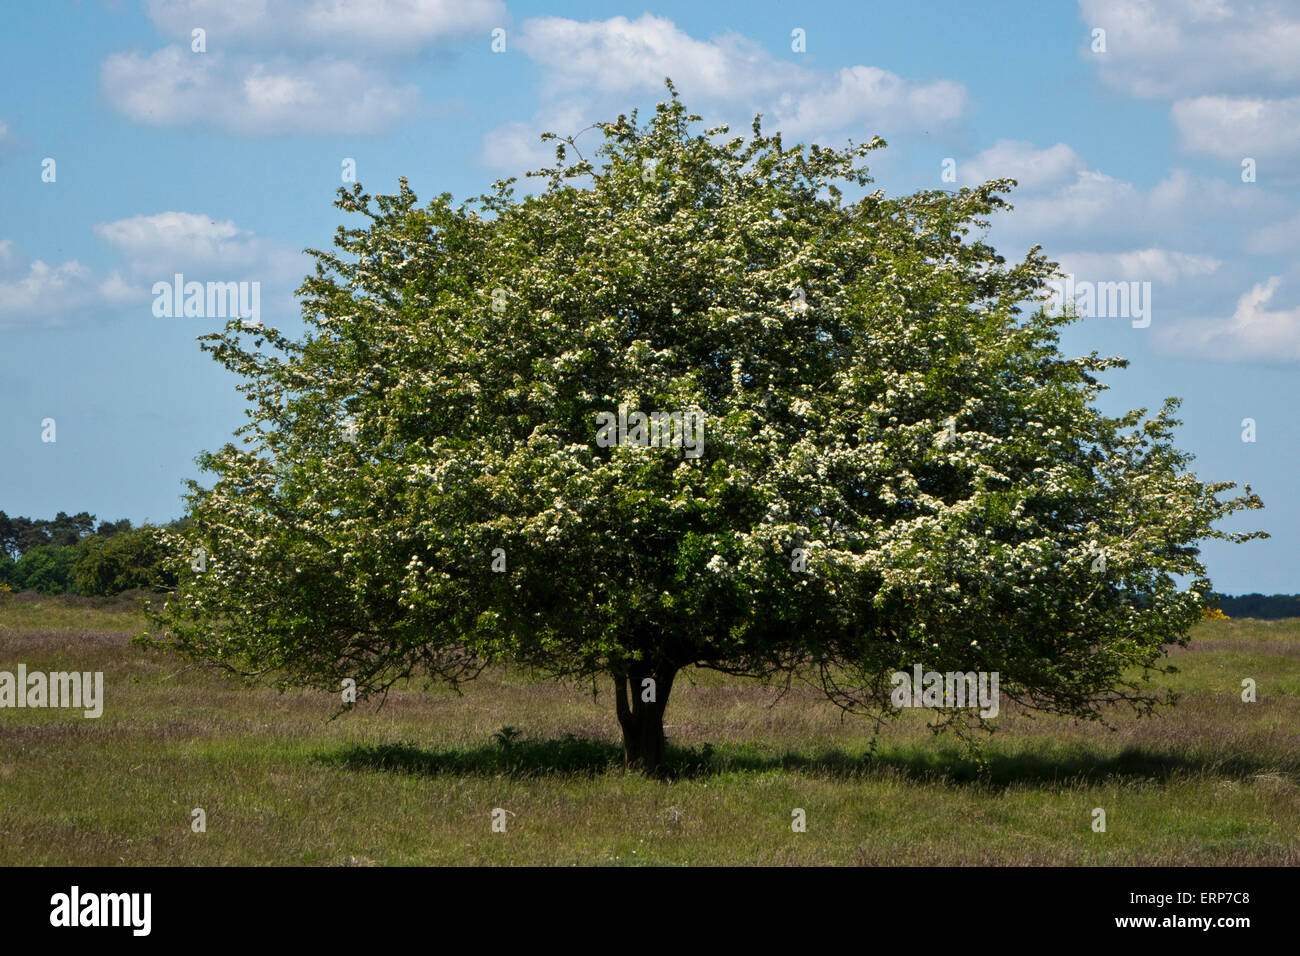 Hawthorn tree - Stock Image